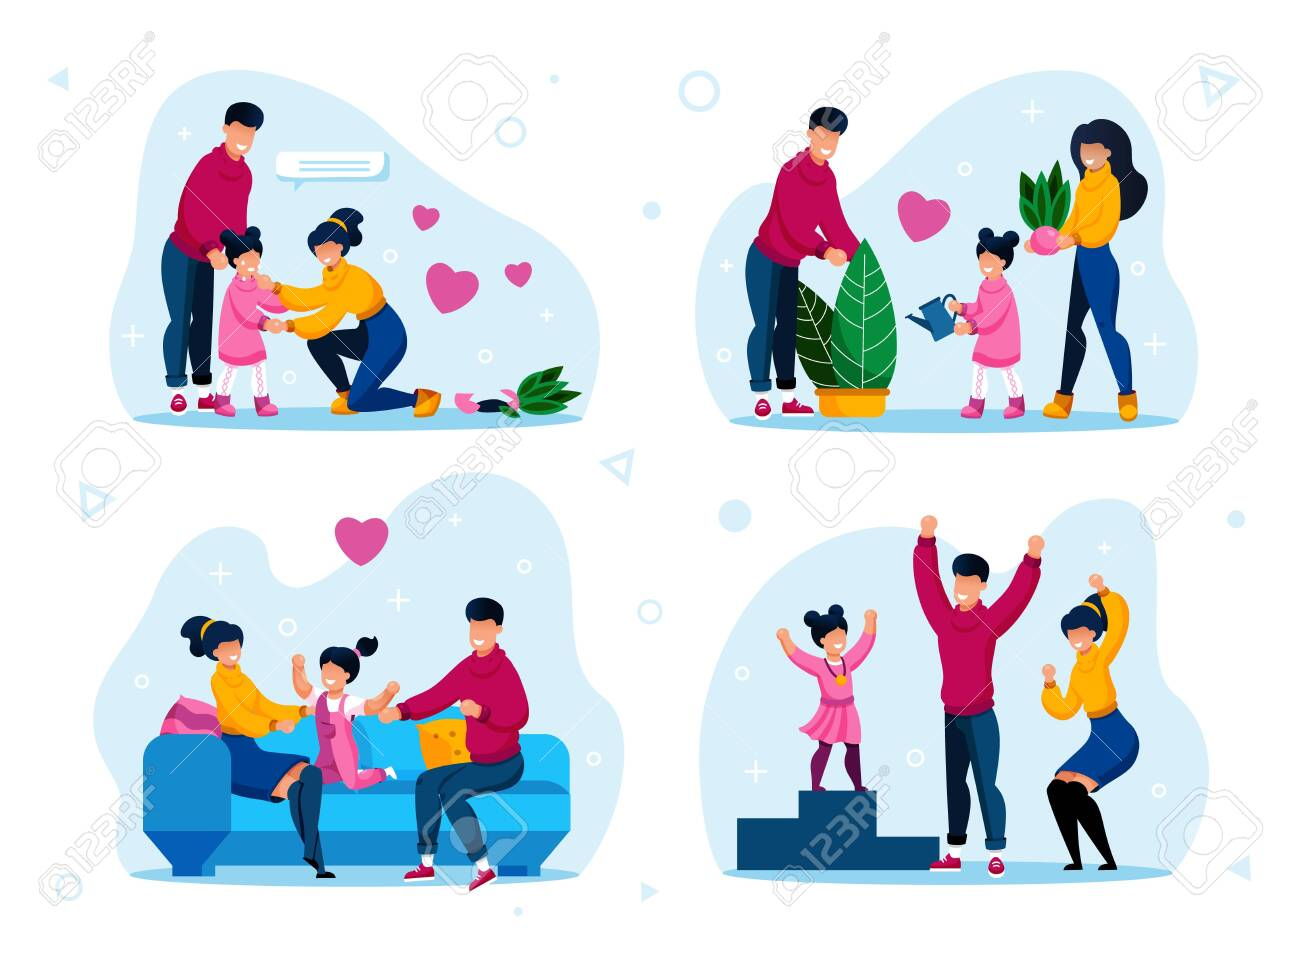 Happy Family Daily Life, Parenthood Activities Trendy Flat Vector Concepts Set. Parents Calming Down Daughter, Watering Plant, Relaxing at Home, Celebrating Kid Victory in Sport Isolated Illustrations - 143153935